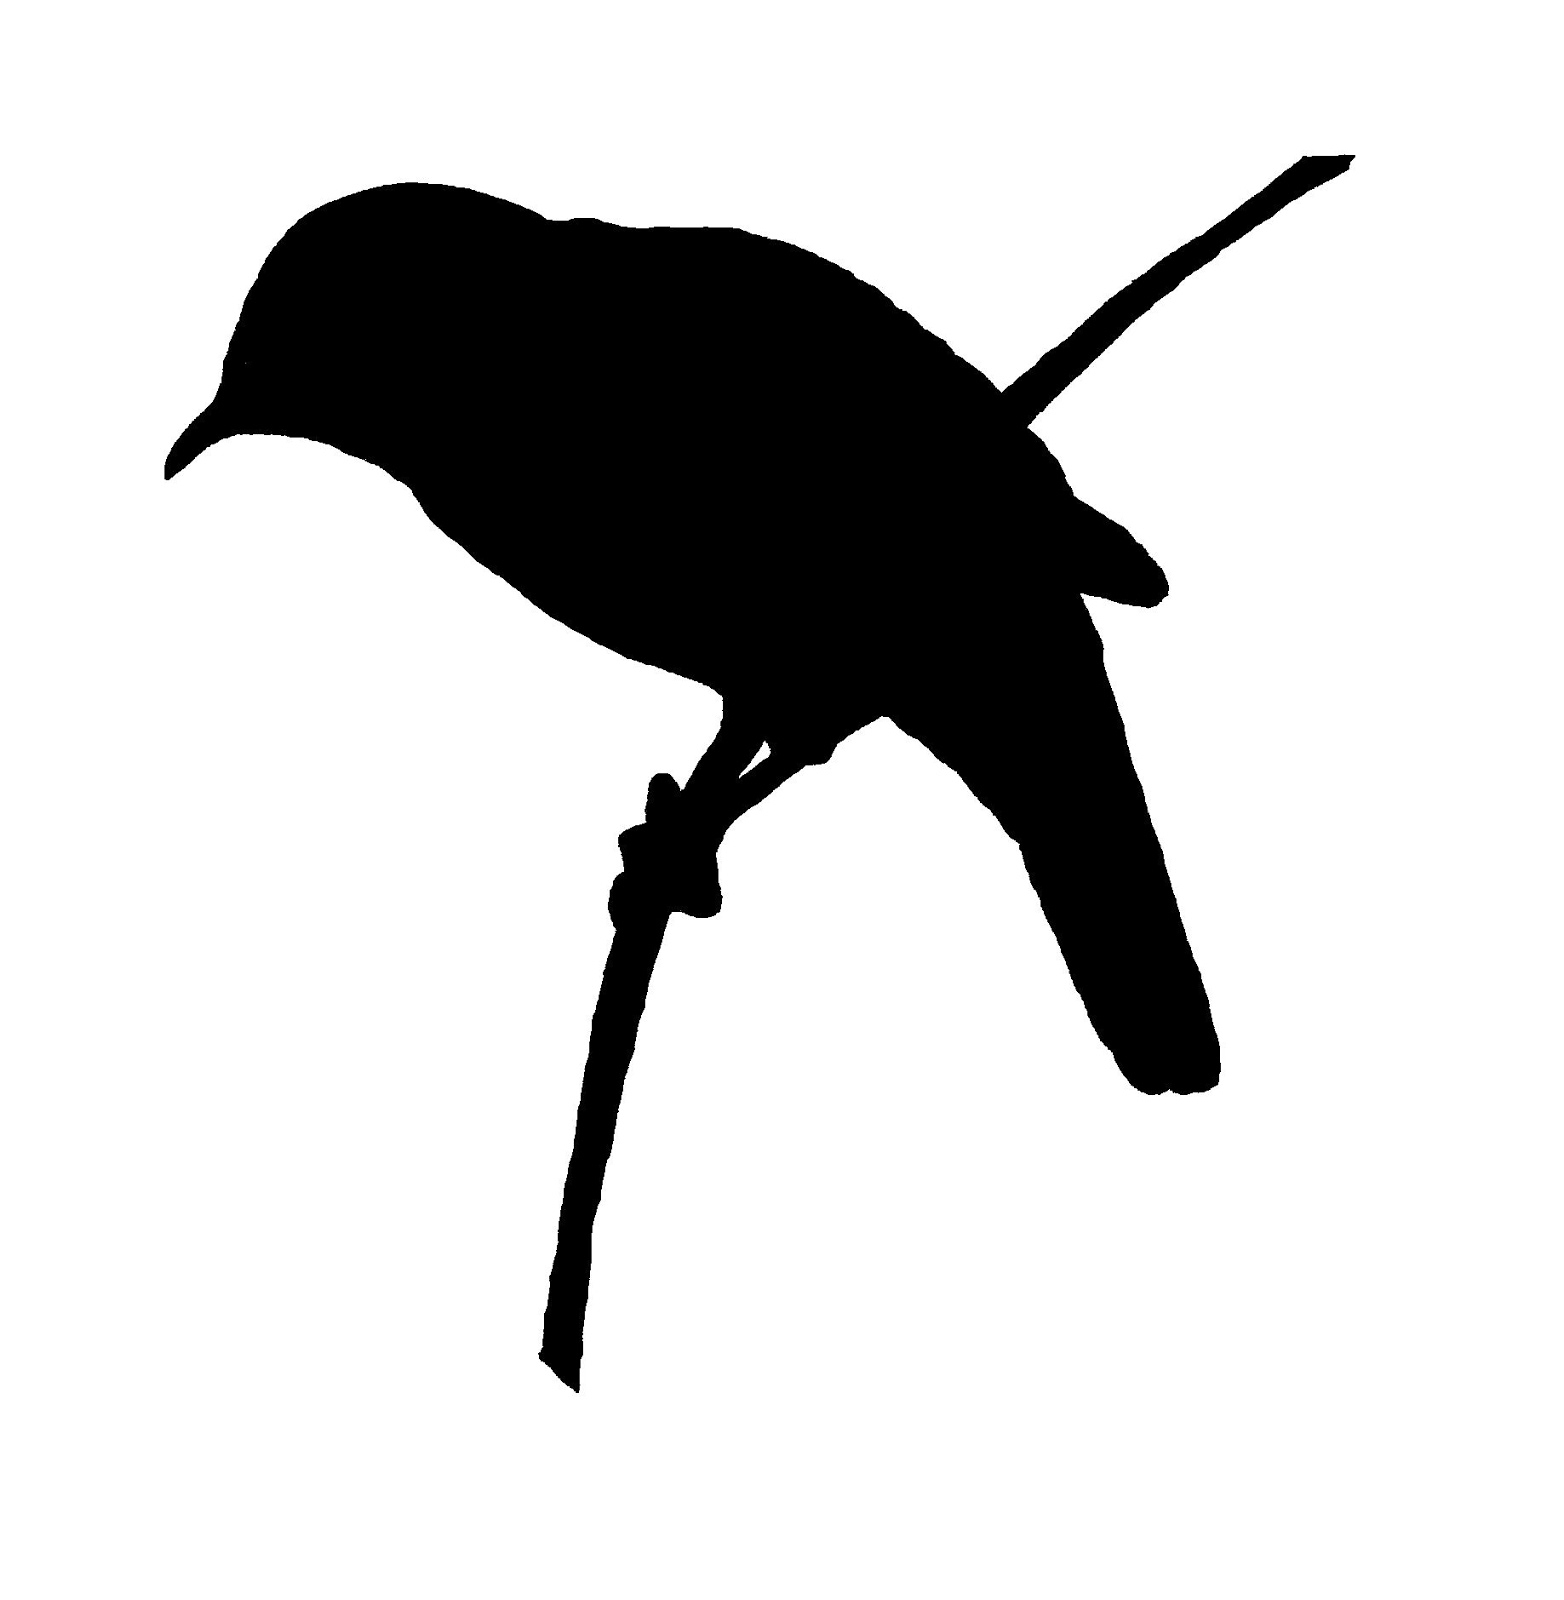 graphic regarding Bird Silhouette Printable named Electronic Stamp Structure: No cost Chicken Picture Move Silhouette